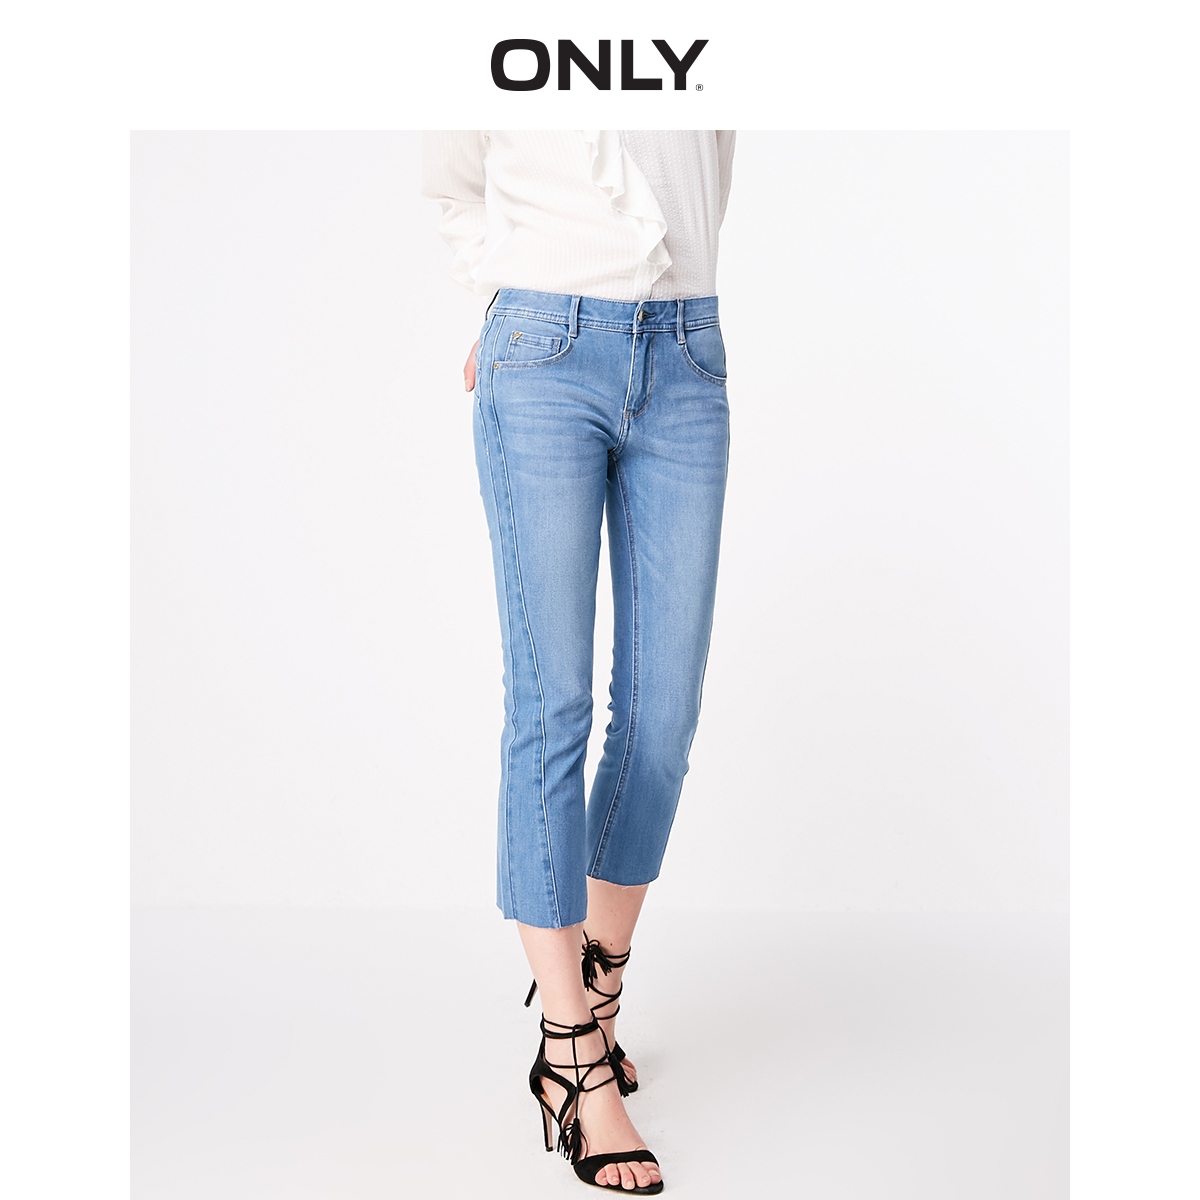 ONLY Women's Slim Straight Fit Low-rise Capri Jeans | 11916I510